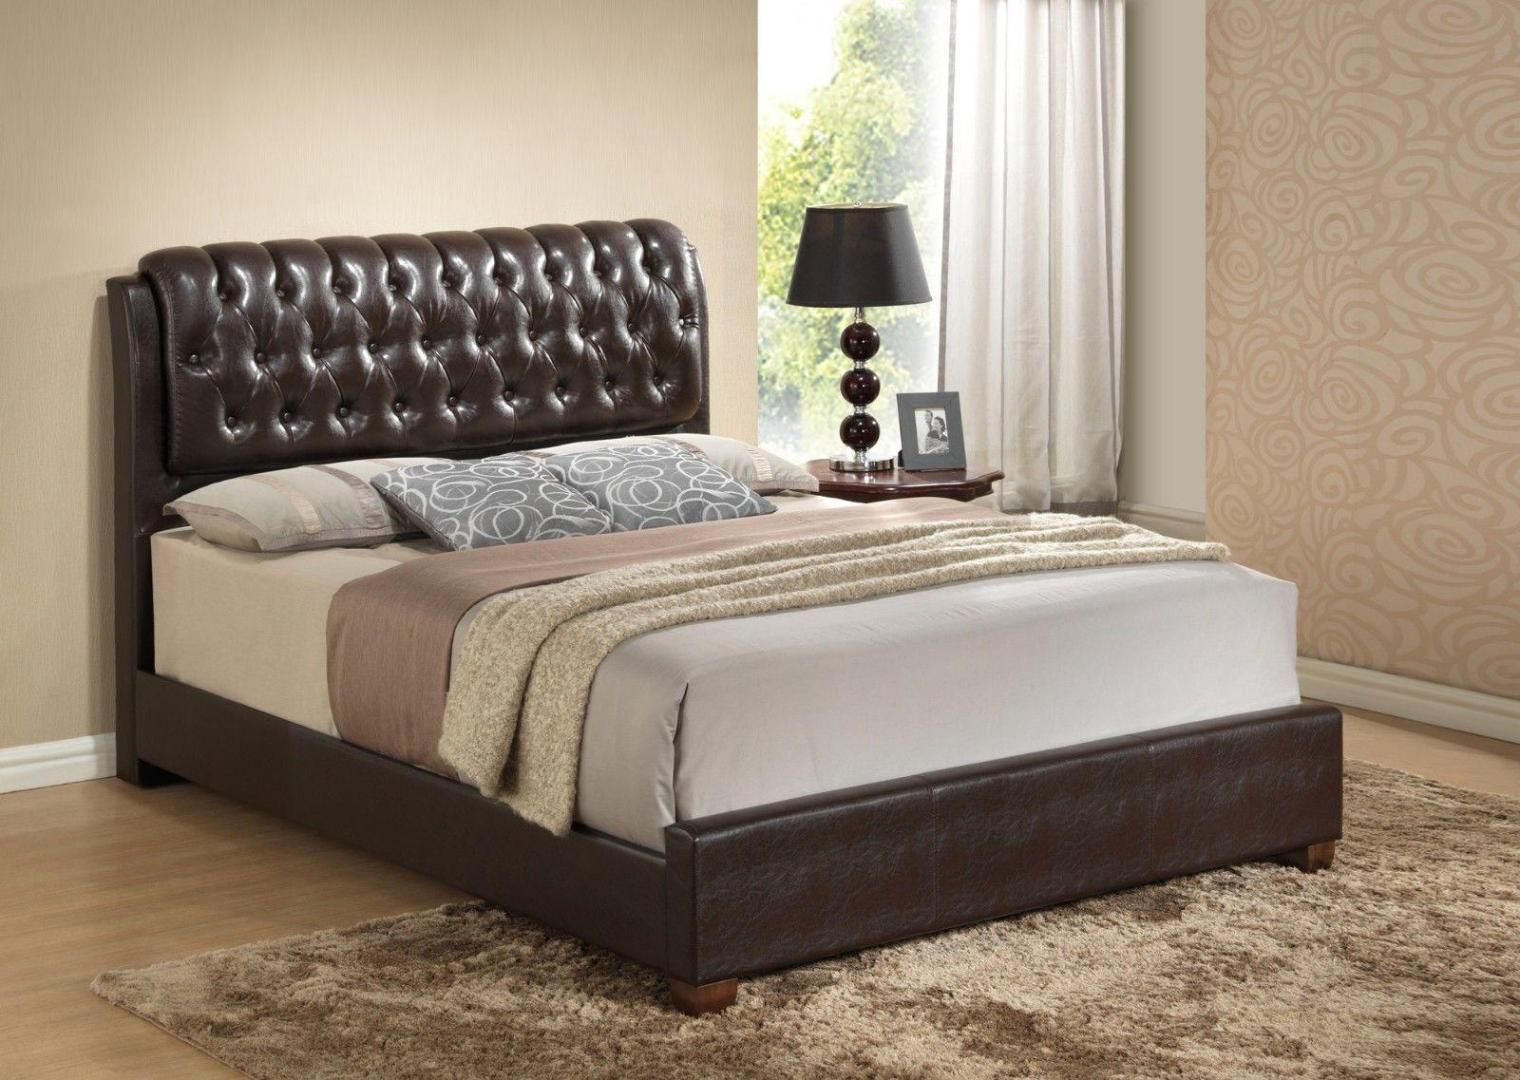 Are you looking for some inspirations to improve quality of bed? You ...